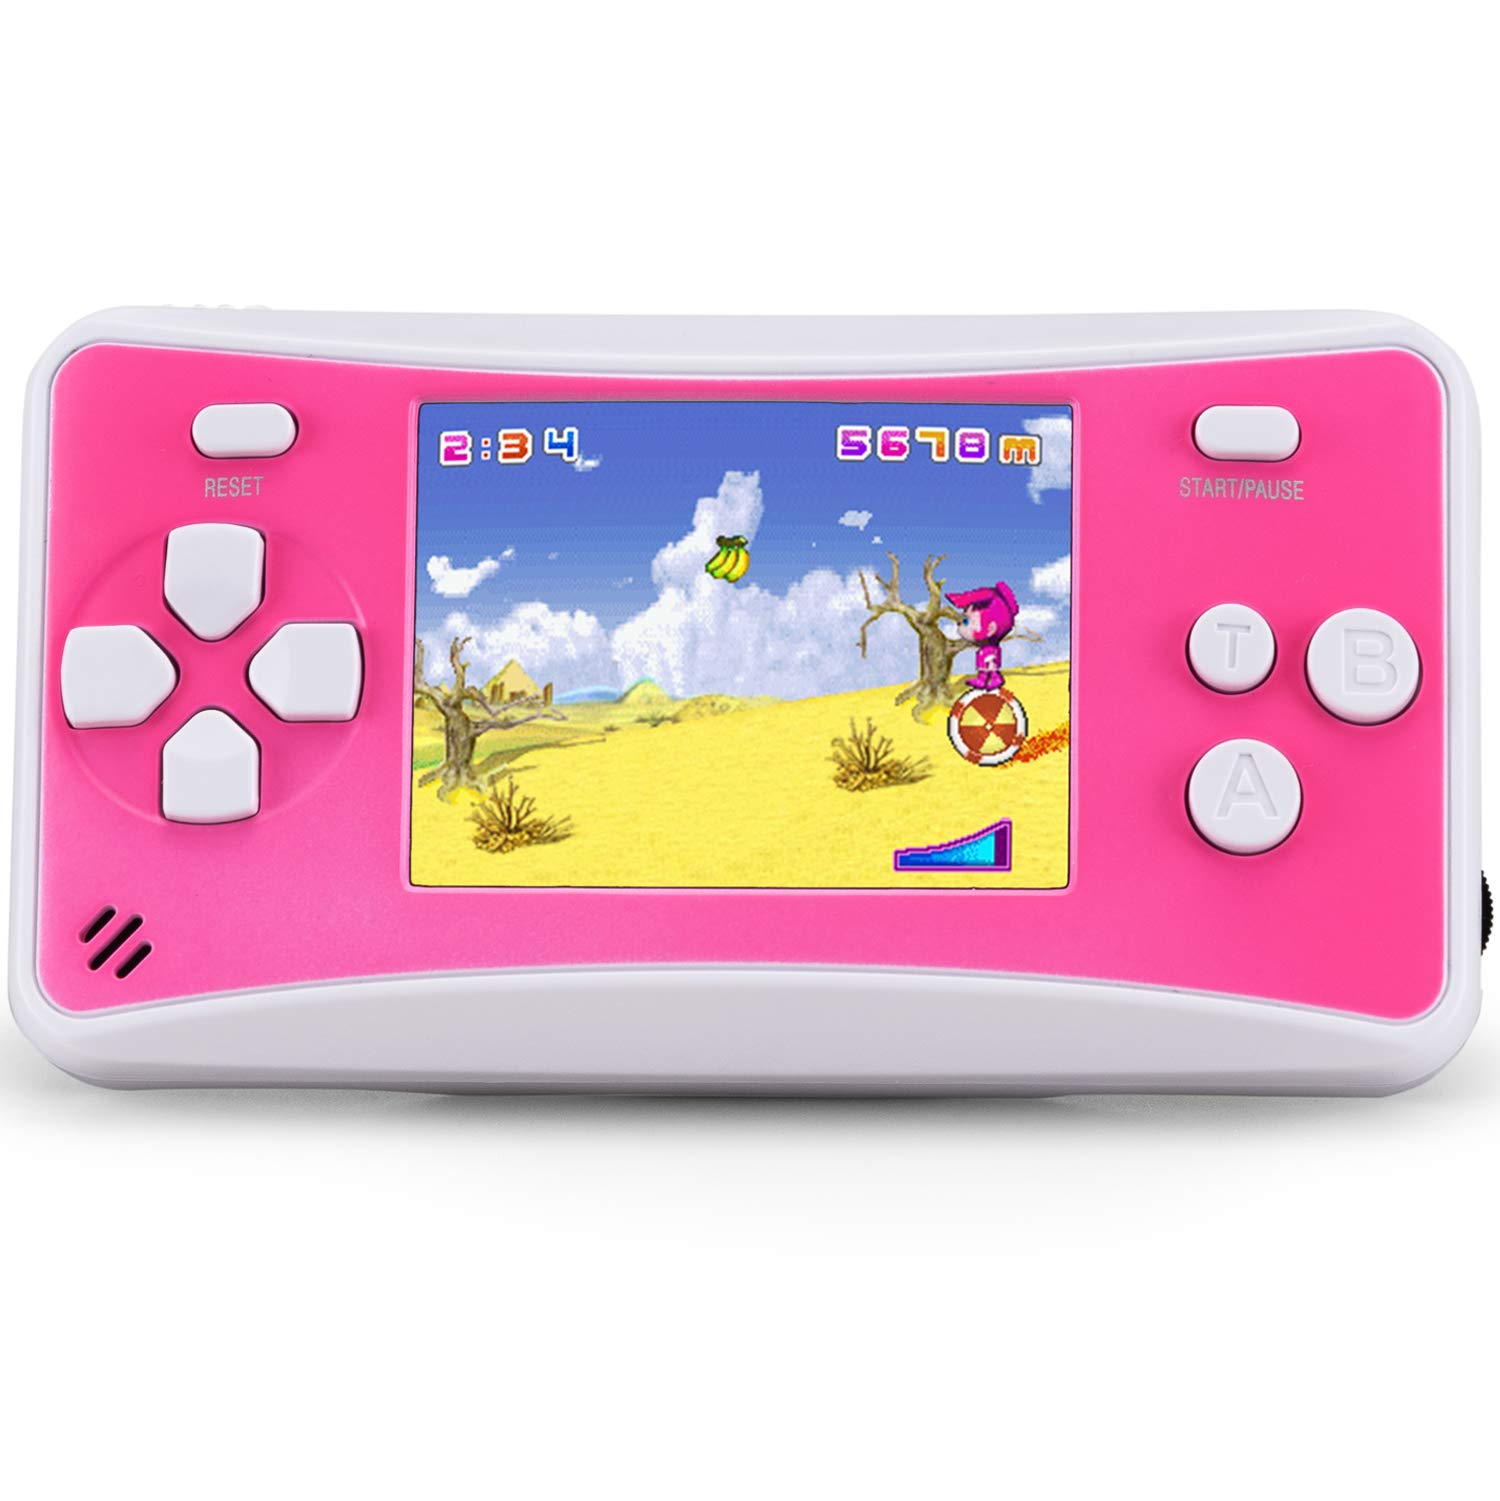 Mini Handheld Games for Children, 8 Bit Retro 152 Classic Games 2.5 Inch LCD Screen Portable Video Game Player Support for Connecting TV Birthday Best Gifts for Kids Boys Girls Ages 4-12 (Pink) by QoolPart